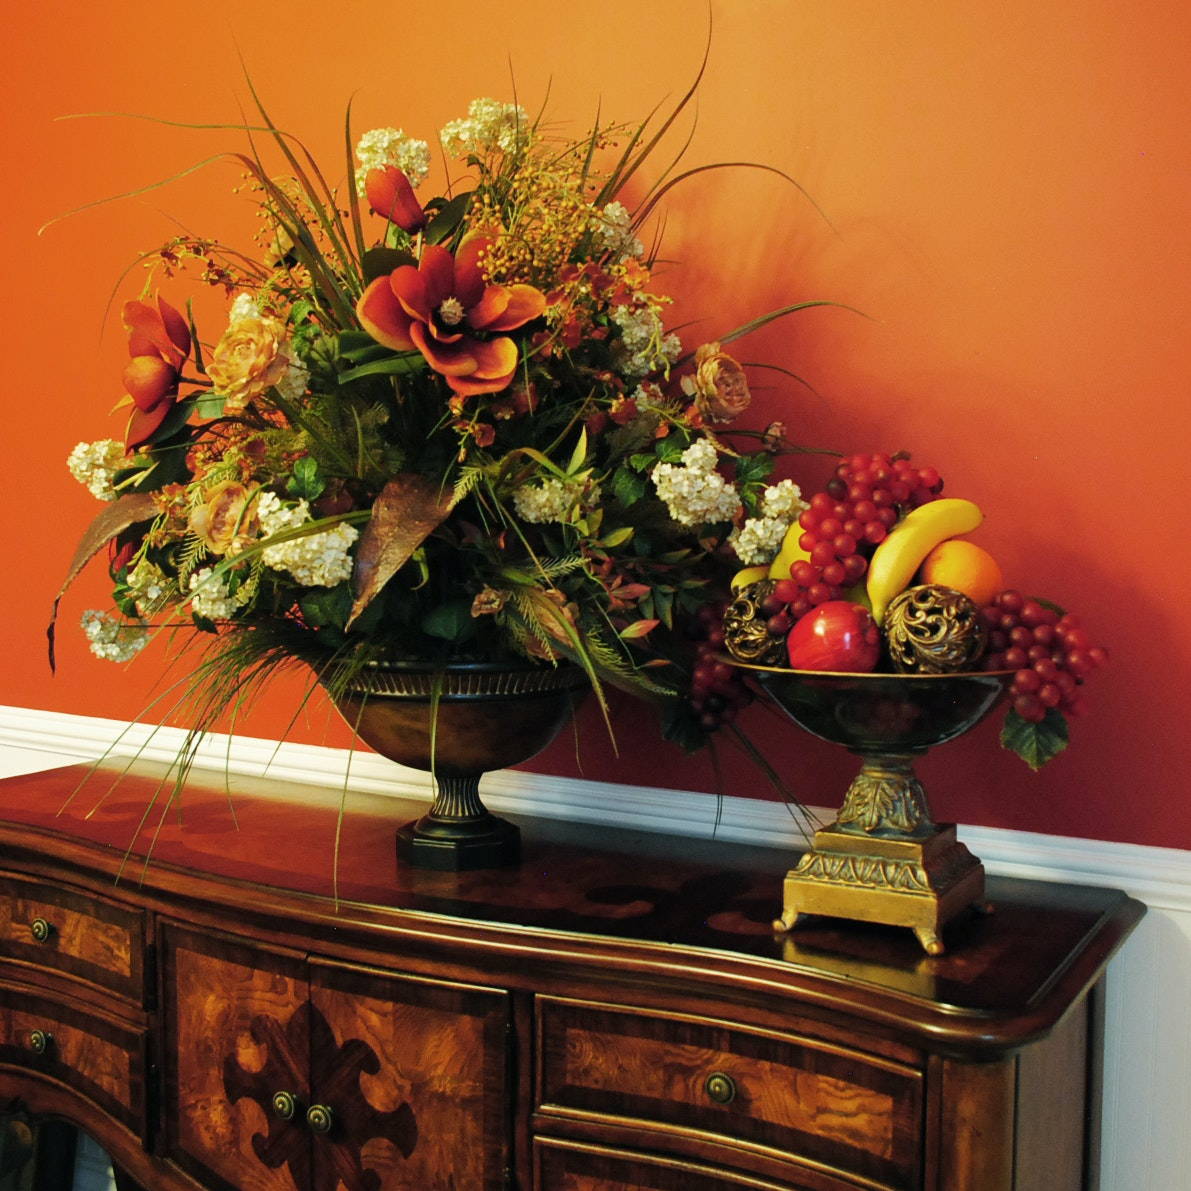 Faux Floral and Fruit Arrangements and Framed Offset Lithograph